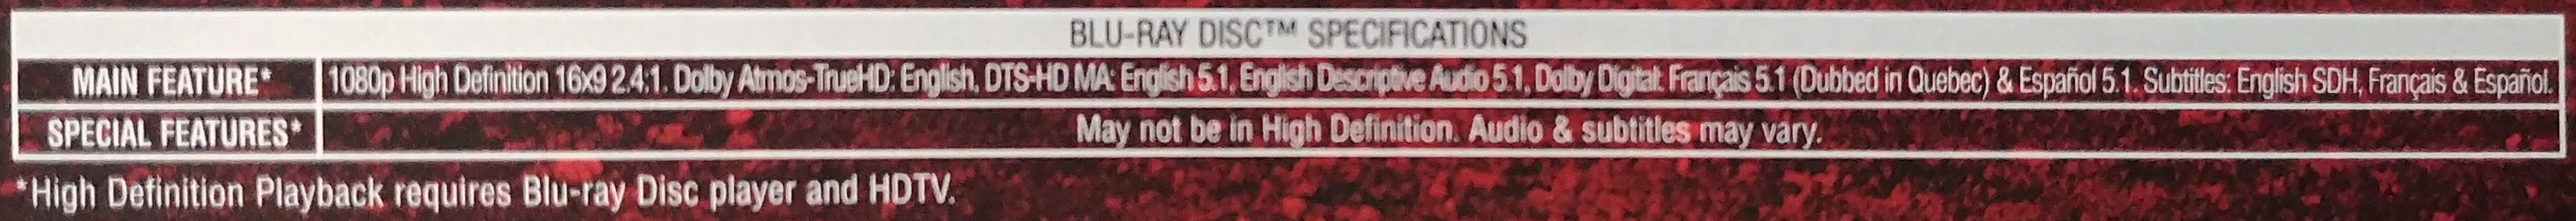 Example movie information from back of Blu-Ray movie.